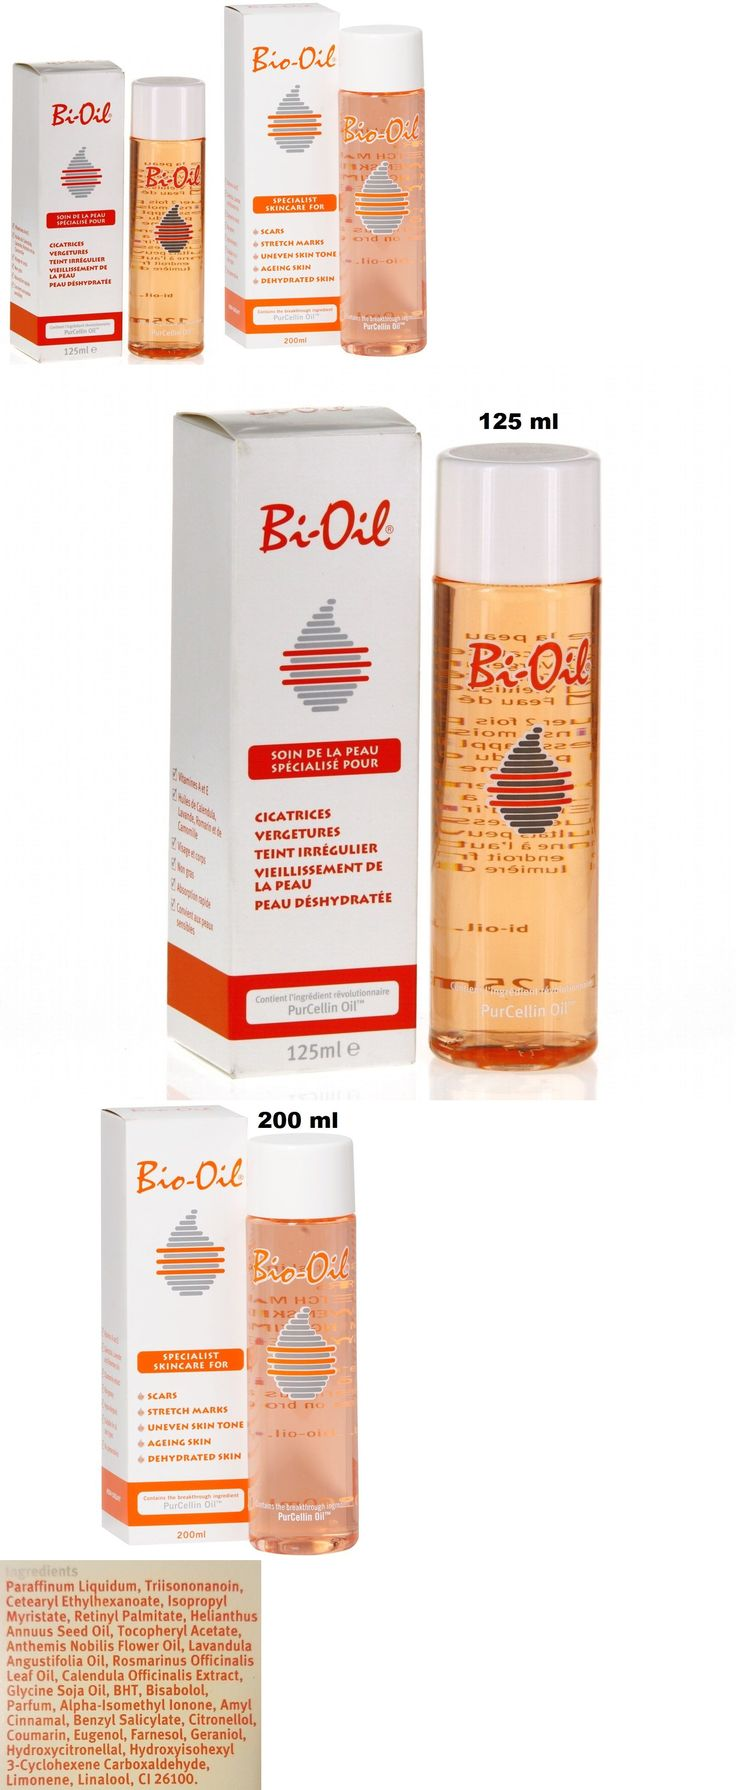 Scar and Stretch Mark Reducers: Bio-Oil For Scars,Stretch Marks, Uneven Skin Tone W/ Purcellin Oil- 125Ml, 200Ml -> BUY IT NOW ONLY: $32.85 on eBay!